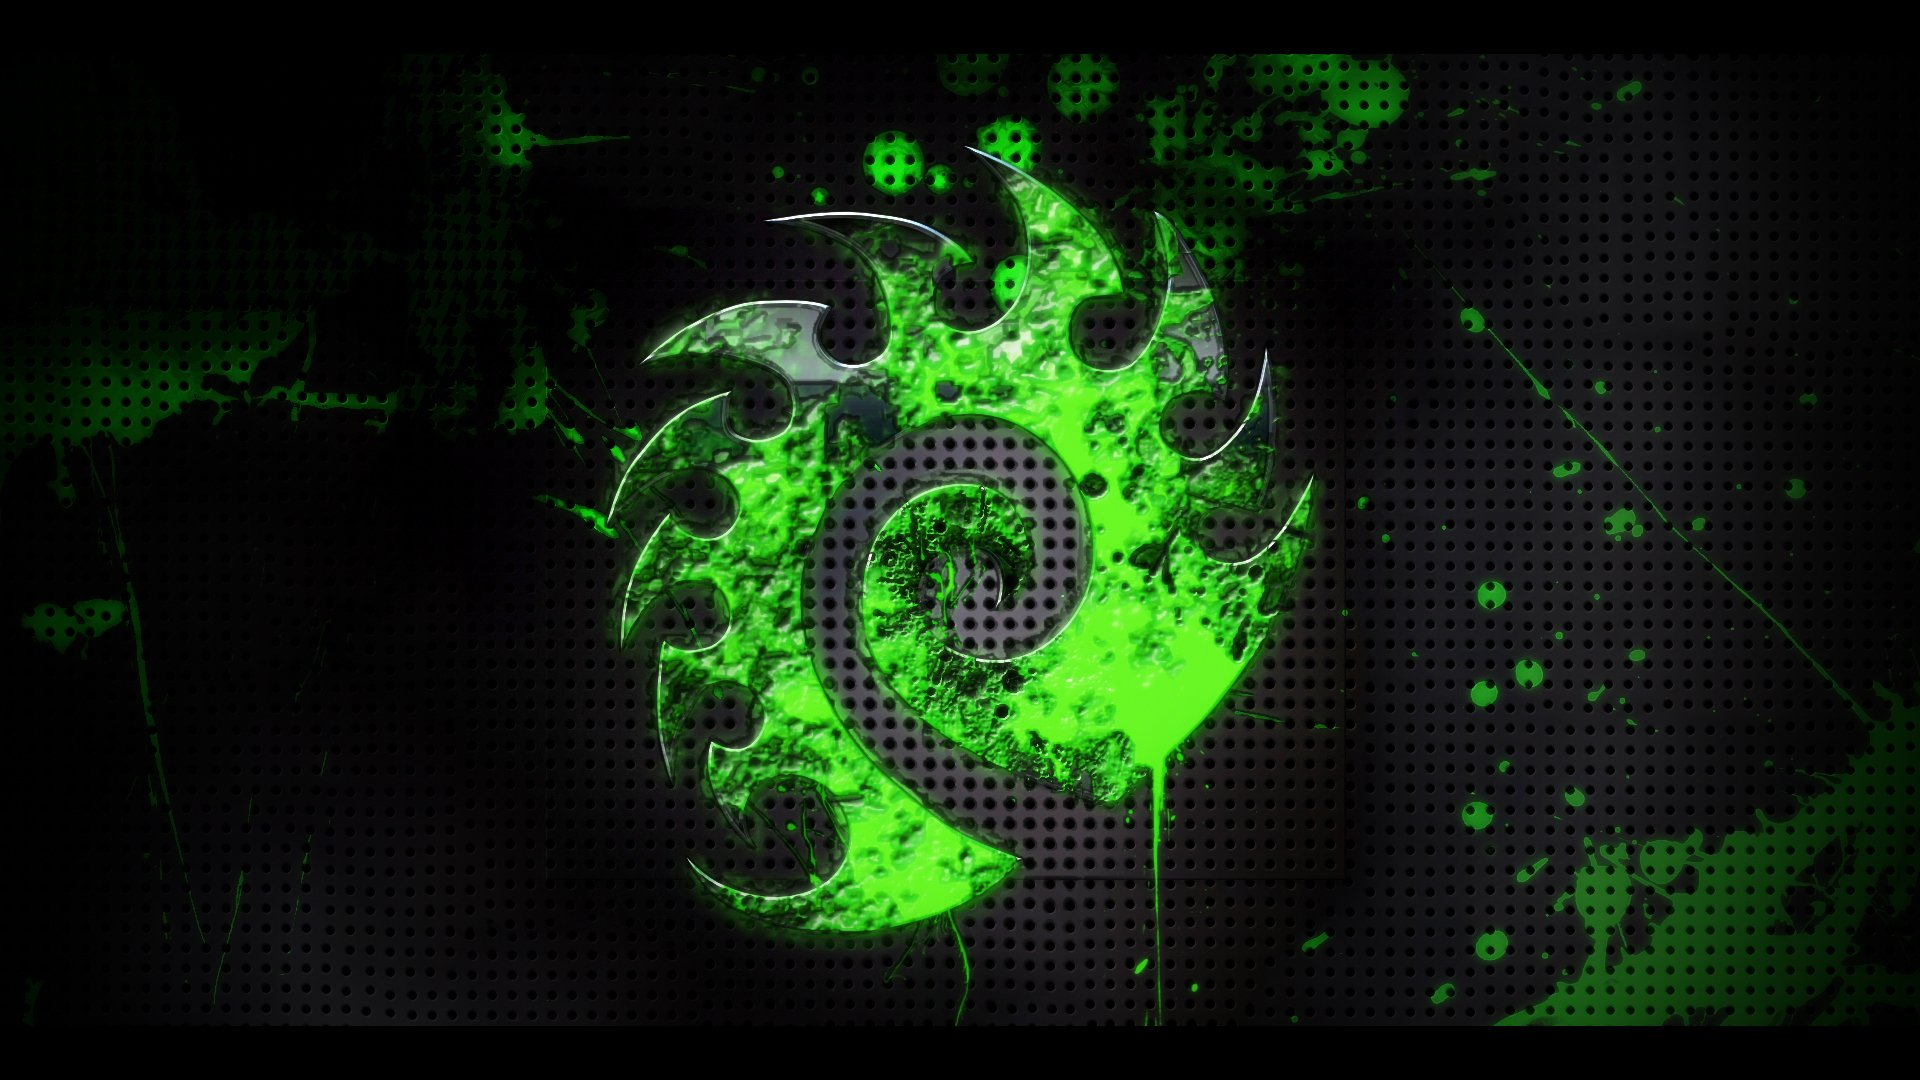 Cool Animated Pubg Wallpapers Zerg Logo Full Hd Wallpaper And Background Image